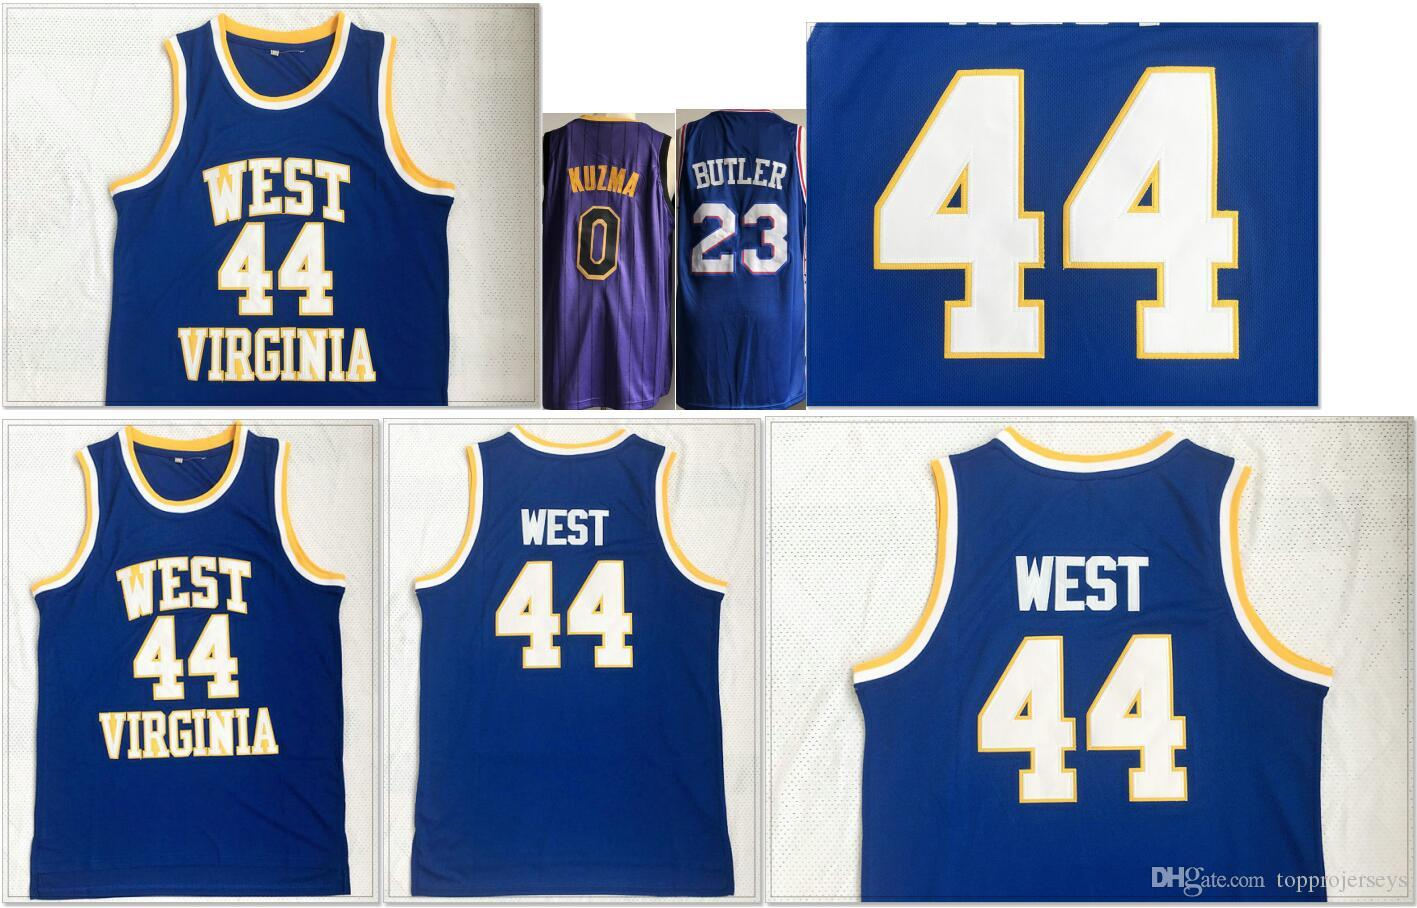 low cost d286c f5b68 West Virgina #44 Jerry West Mens College Basketball Shirts 0 Kyle Kuzma #23  Jimmy Butler Vintage Stitched Embroidery Team Baseball Jerseys